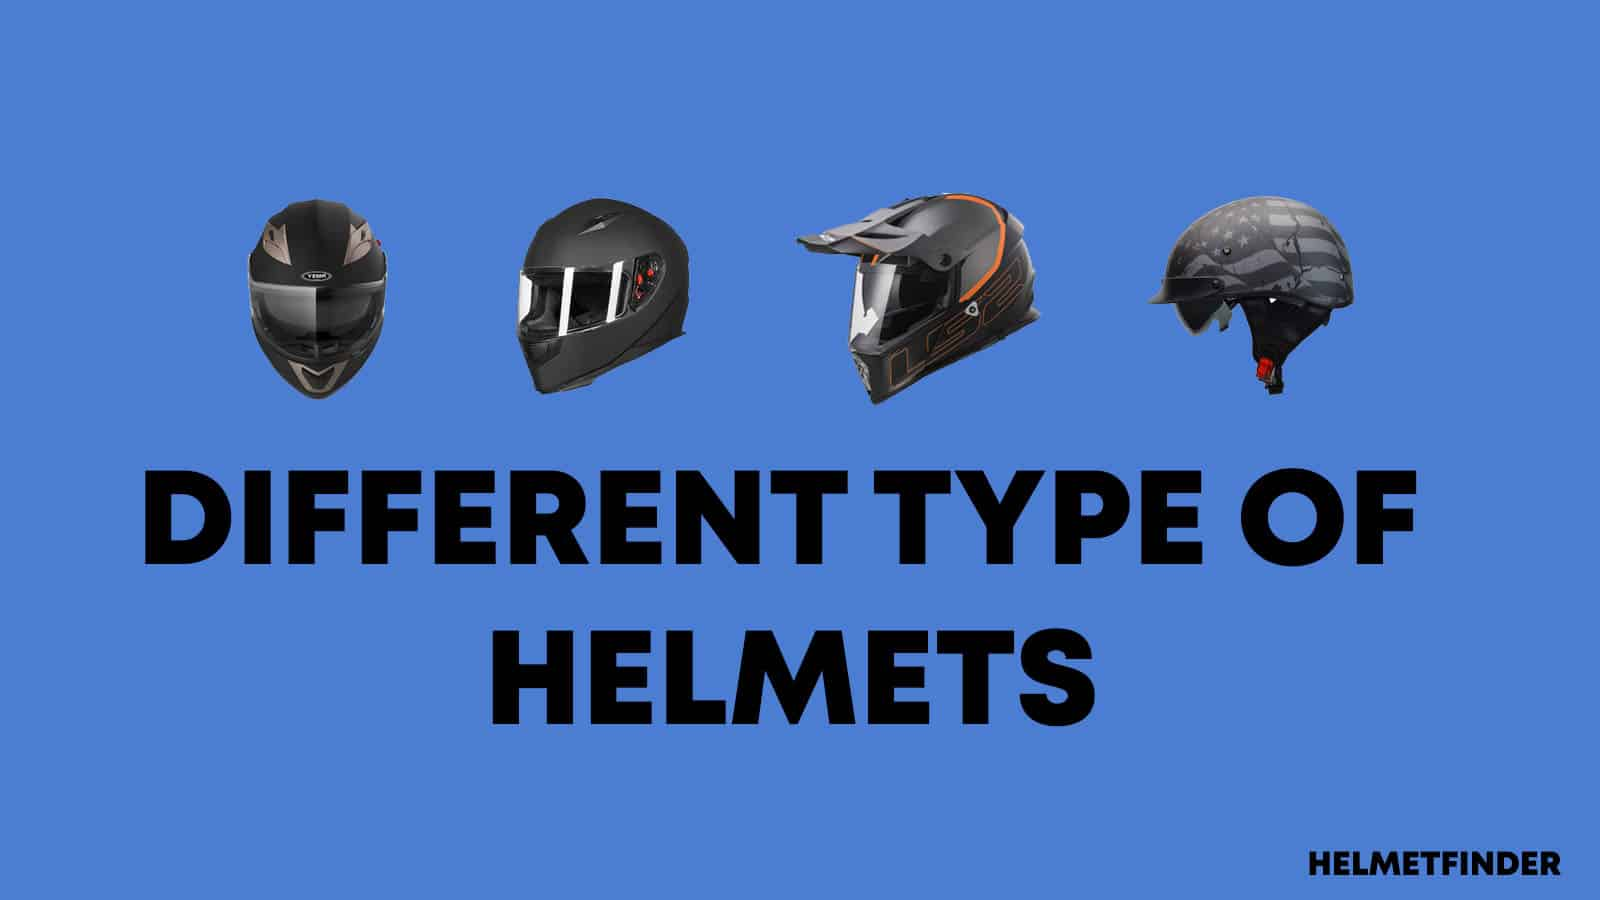 Different Type of Helmets